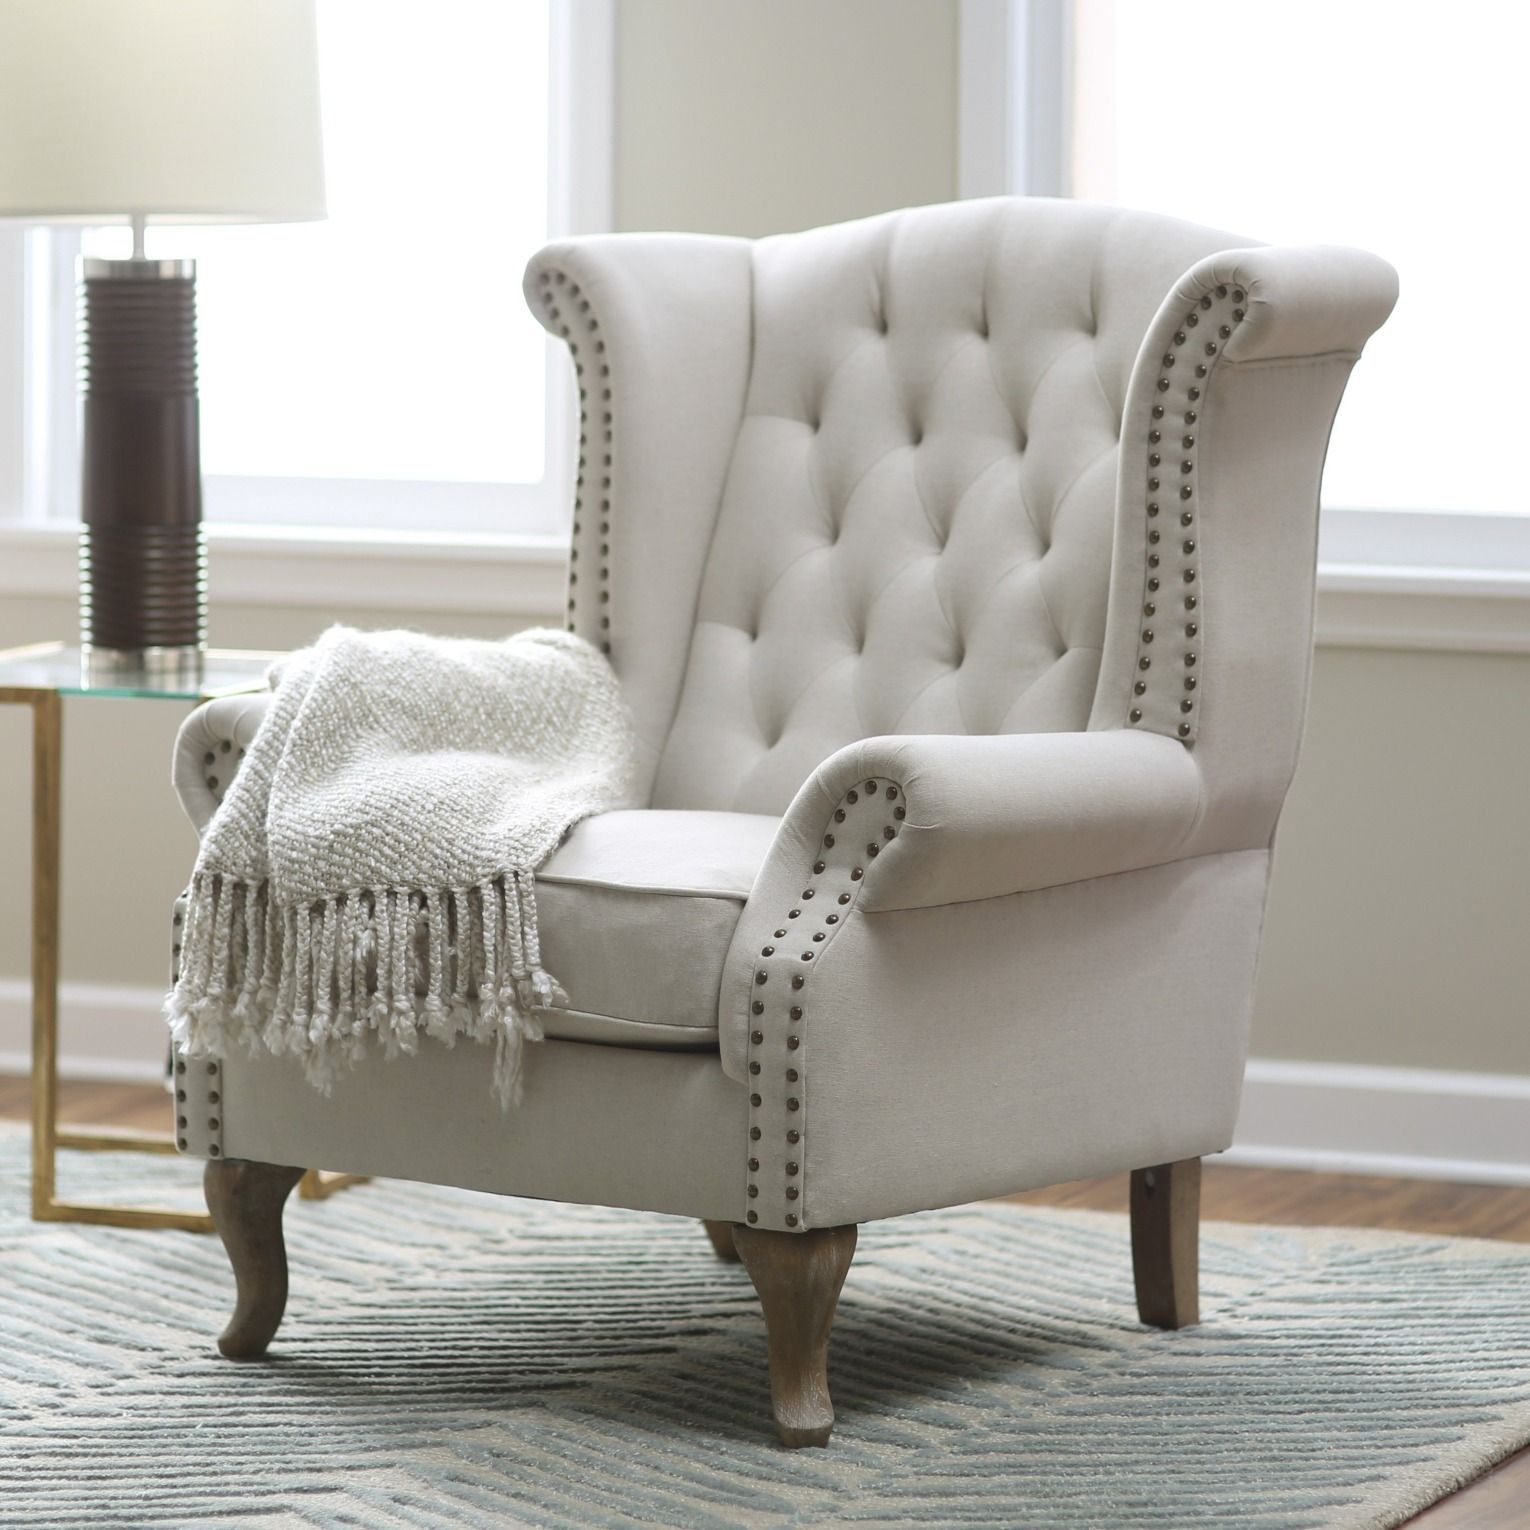 Sit with class and elegance in this Belham Living Tatum Tufted Arm ...